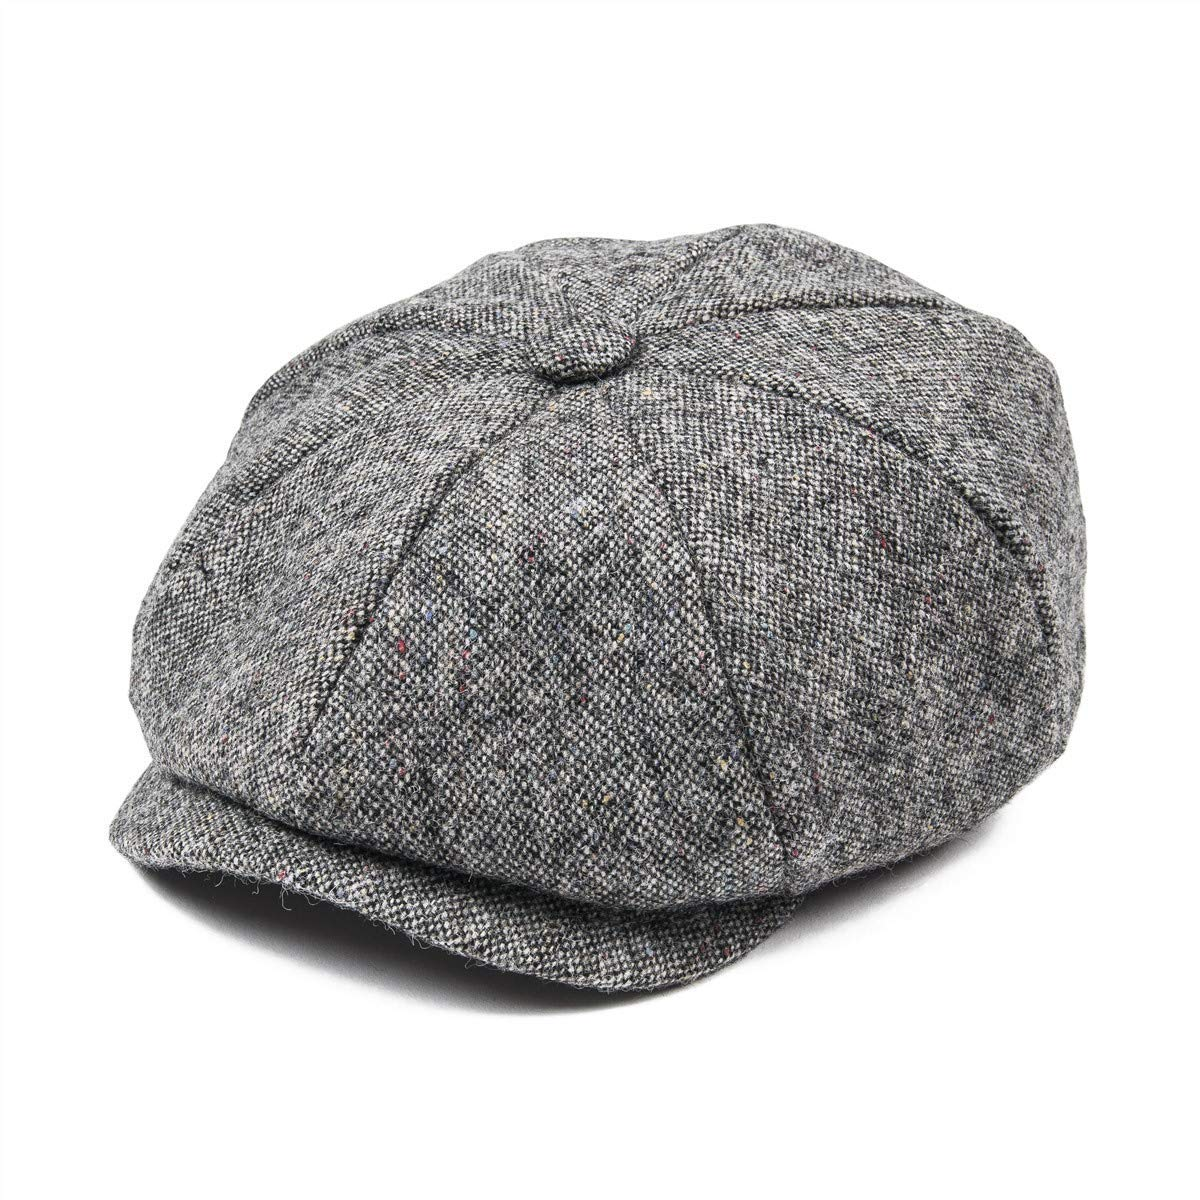 bd6947c509a Get Quotations · JANGOUL Mens 100% Wool Newsboy Cap Grey Series 8 Panel  Tweed Cabbie Hat